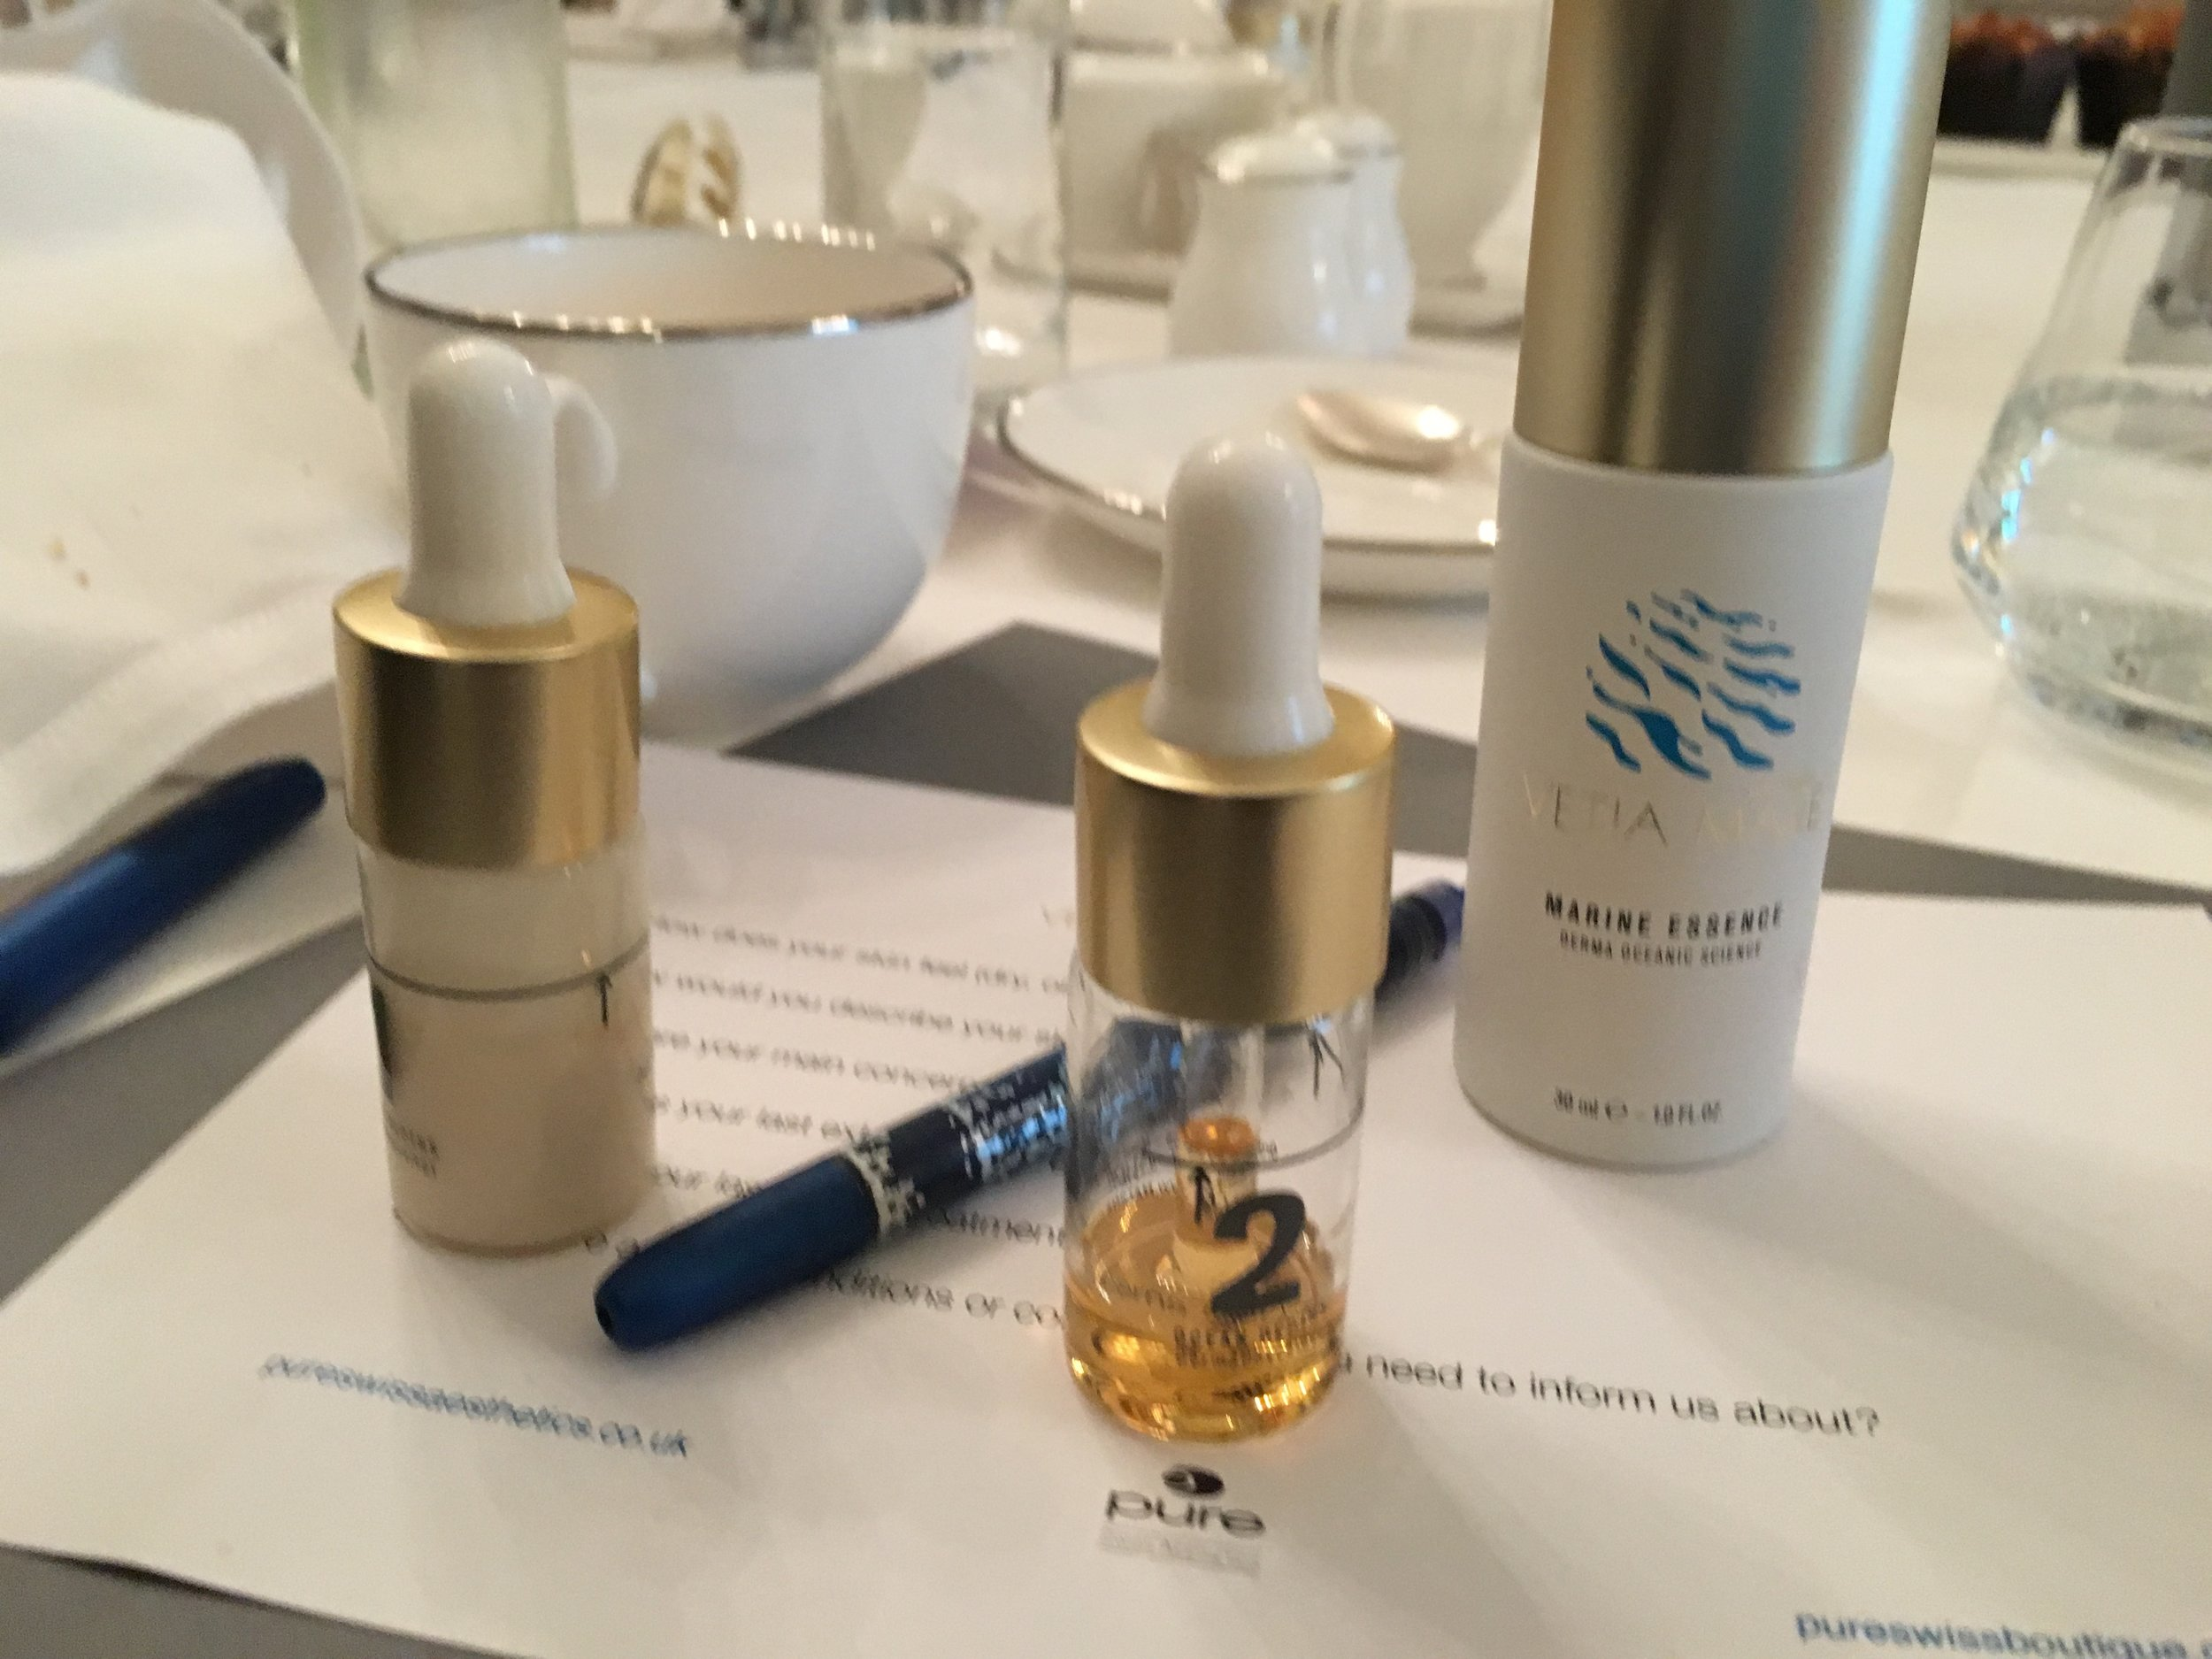 Marine superpowers: Vetia Mare products, for optimising skin that needs a reboot